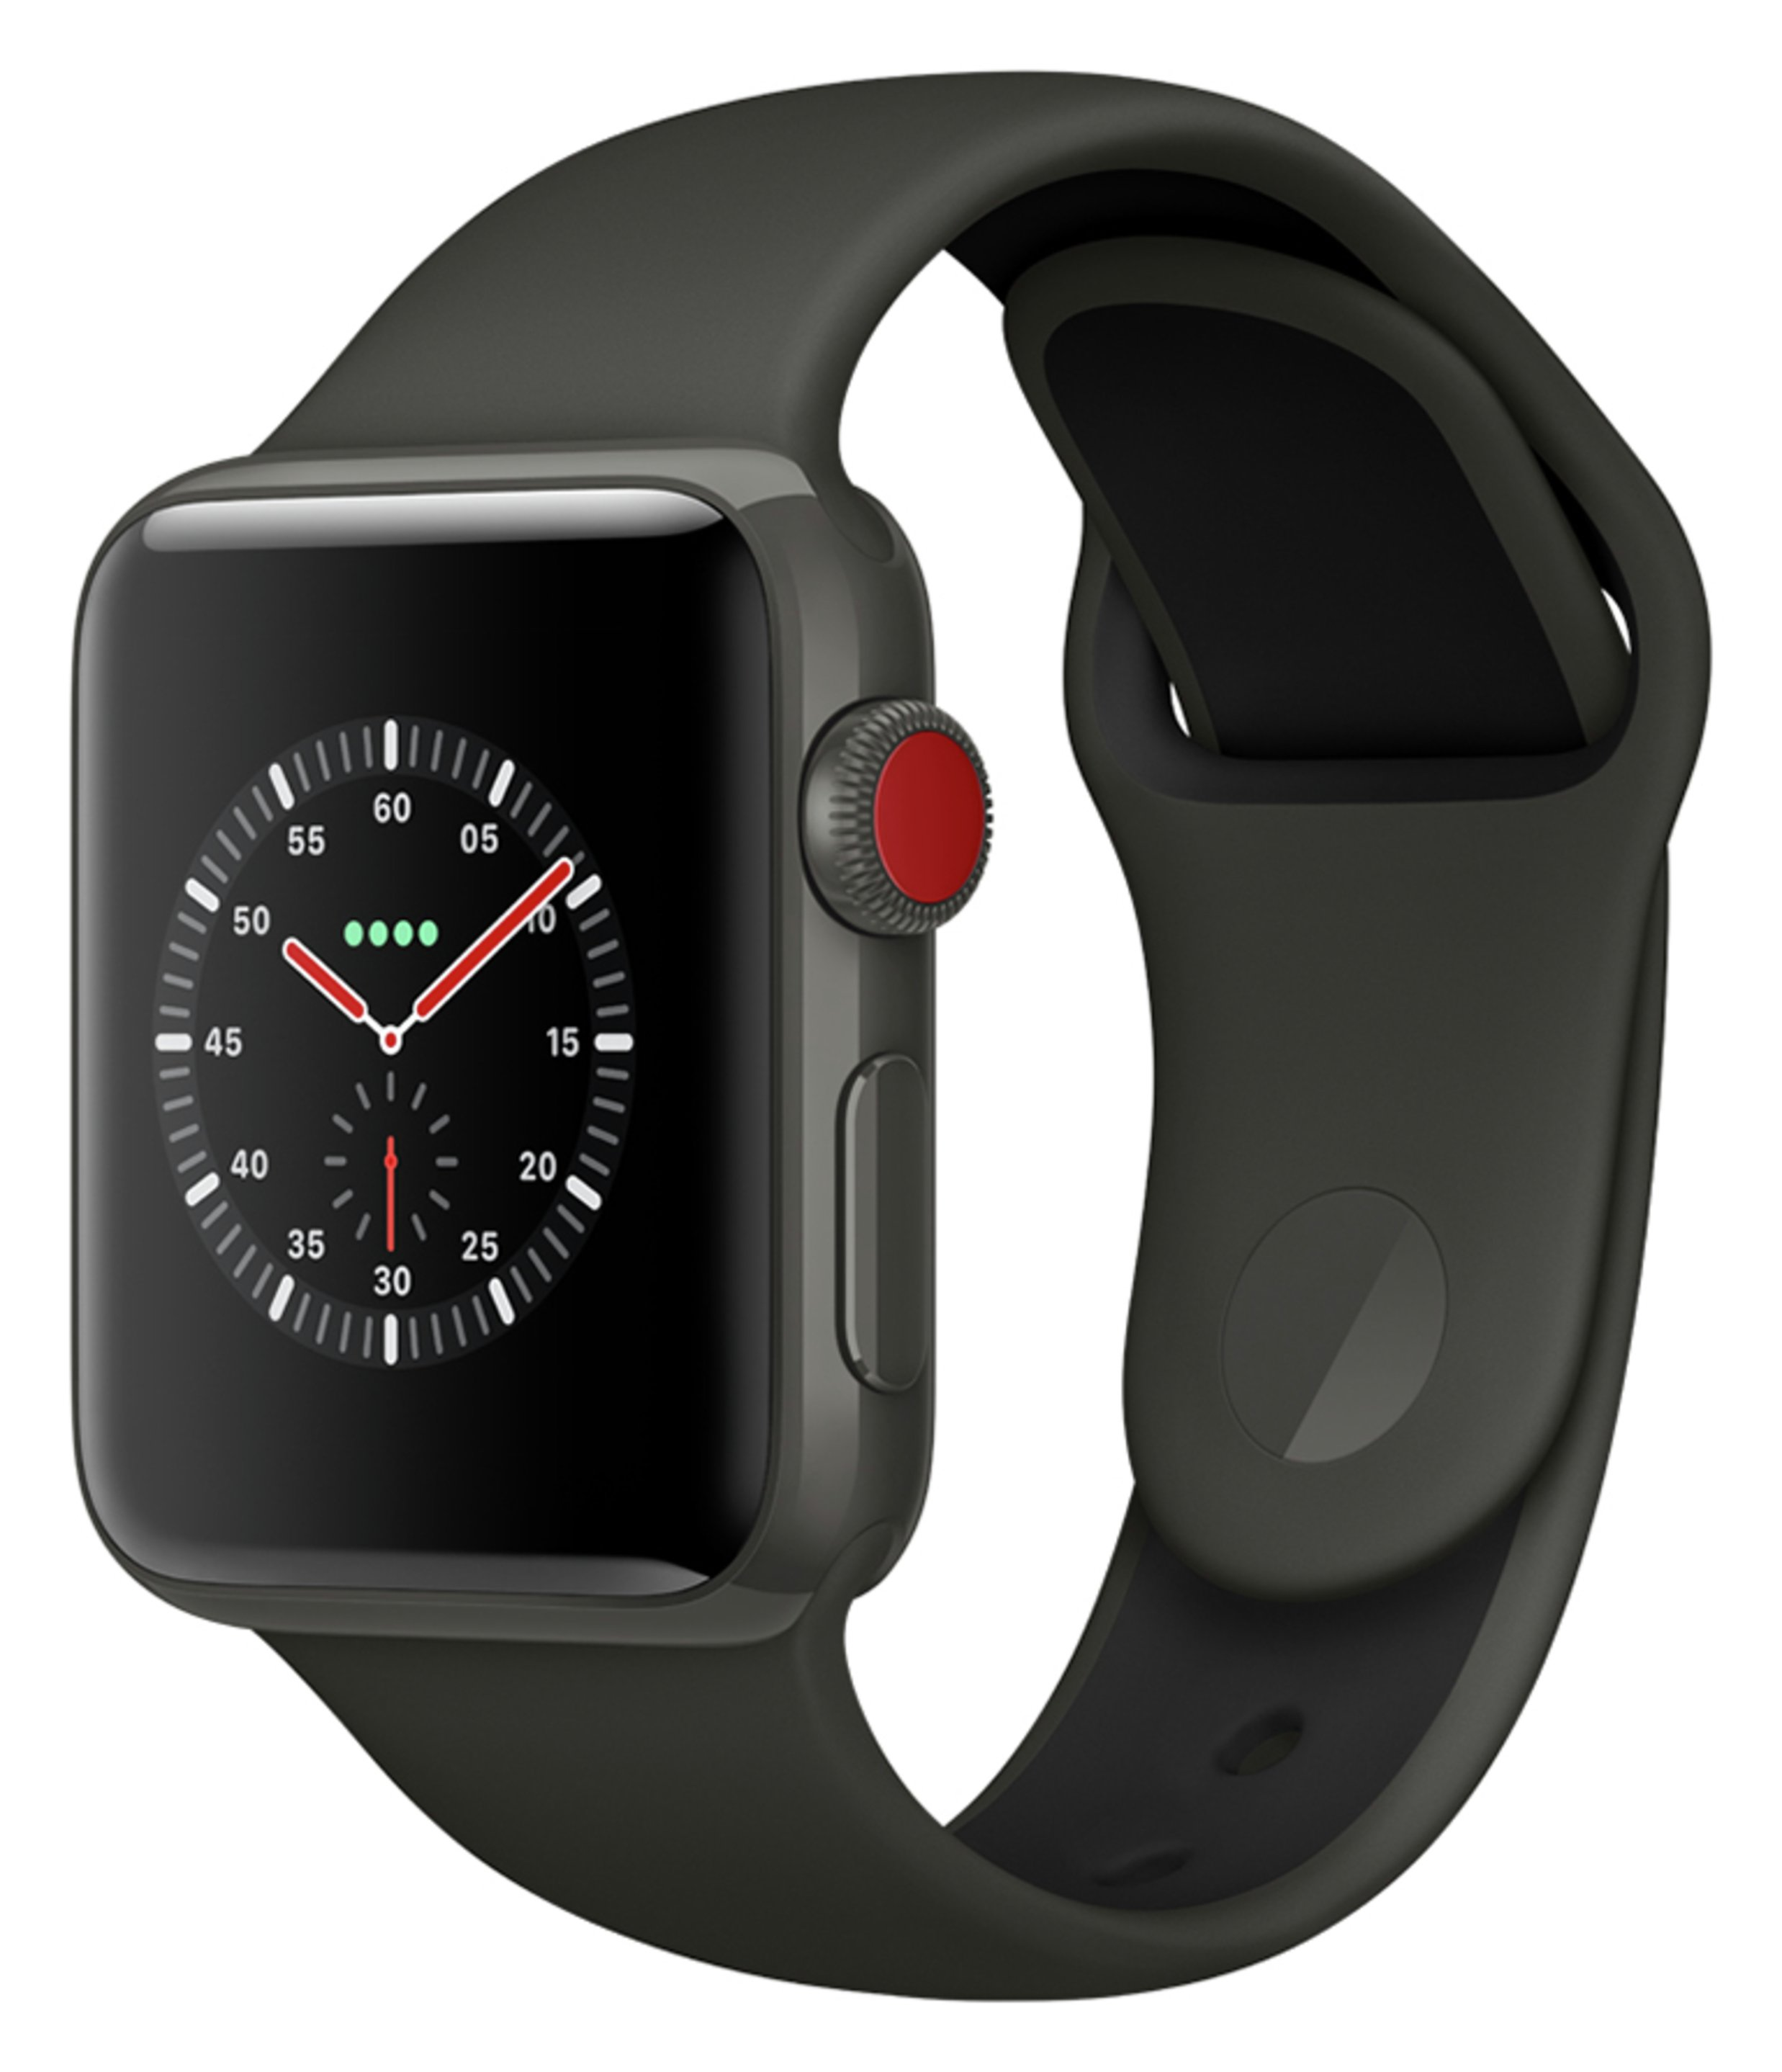 Buy Brand New Apple Watch S3 Edition Cellular 42mm Grey Ceramic